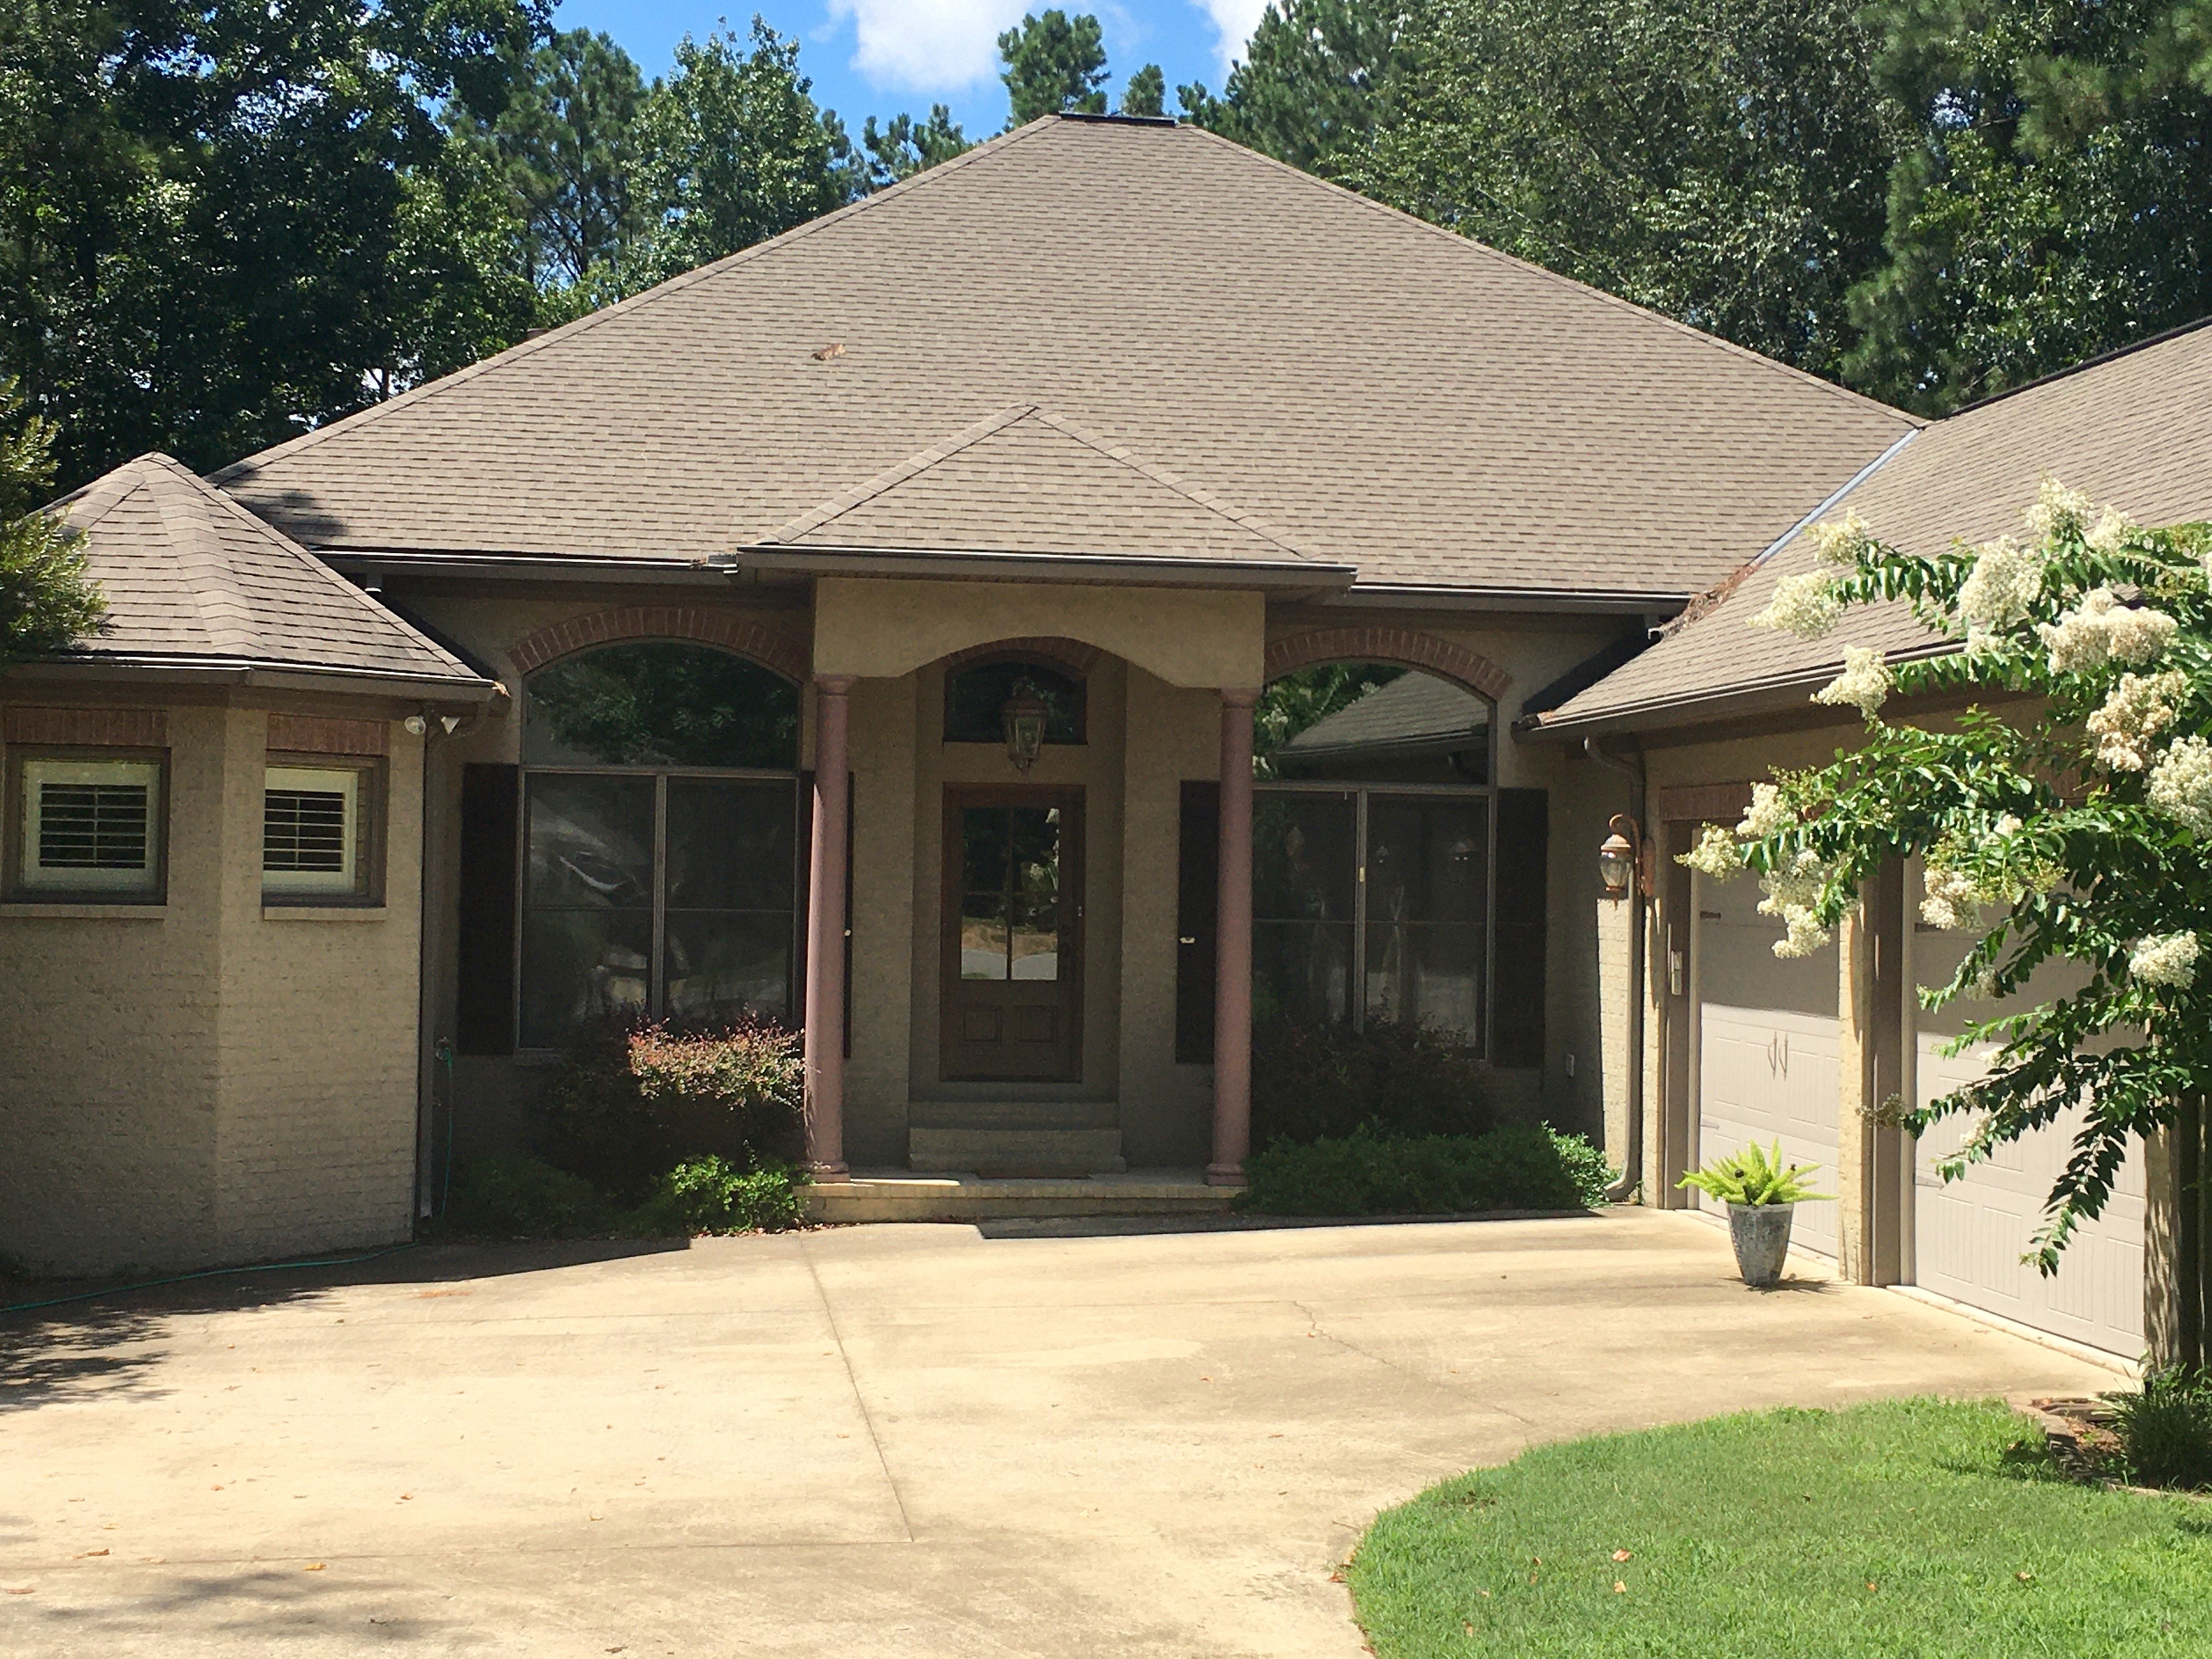 4 Bedrooms / 3 Bathrooms - Est. $2,701.00 / Month* for rent in Northport, AL